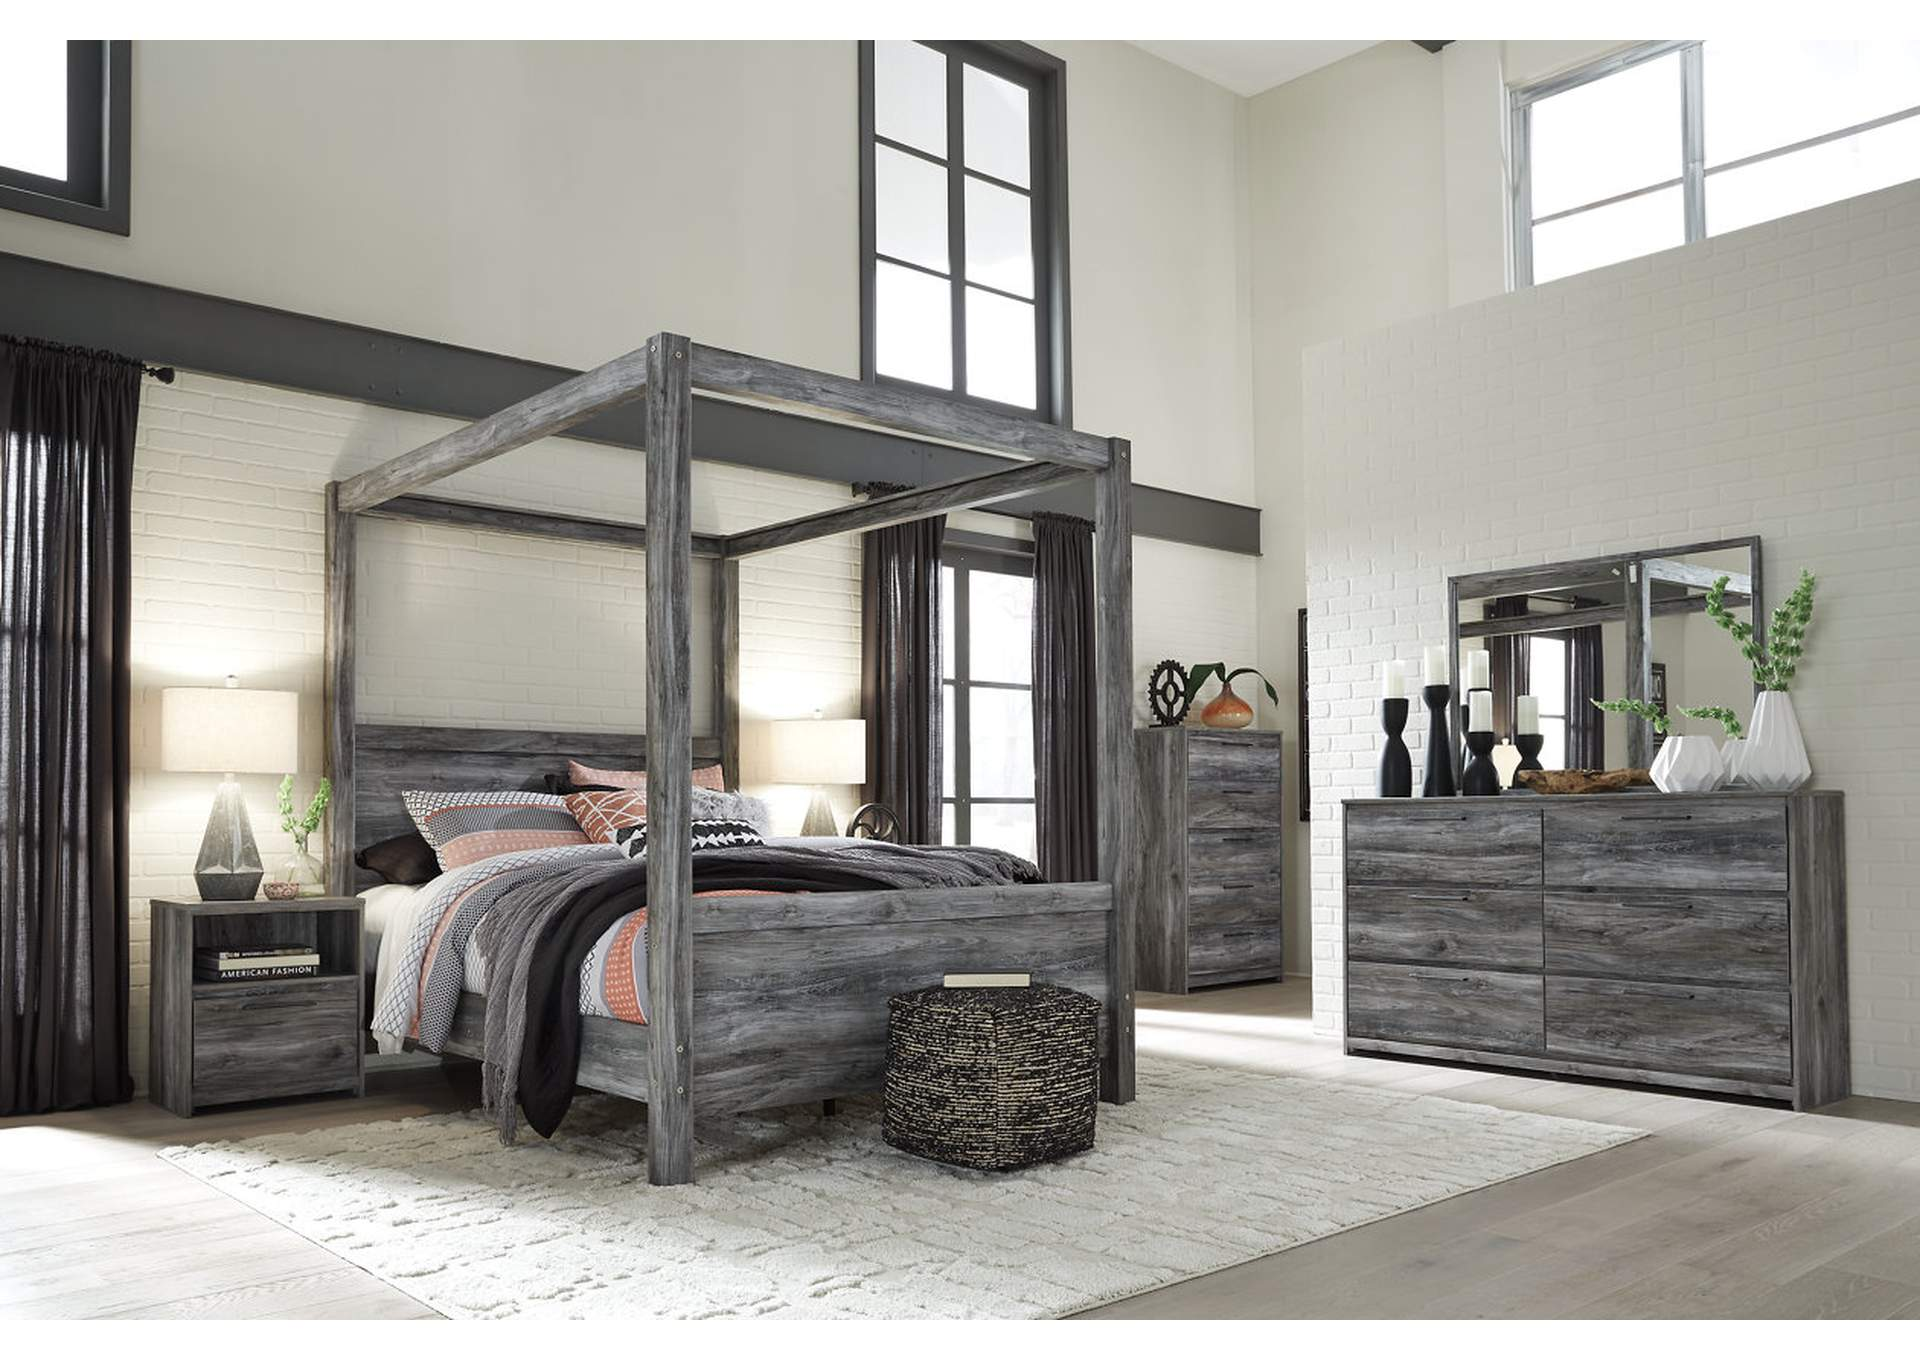 Baystorm Gray King Canopy Bed w/Dresser, Mirror, Drawer Chest and Nightstand,Signature Design By Ashley